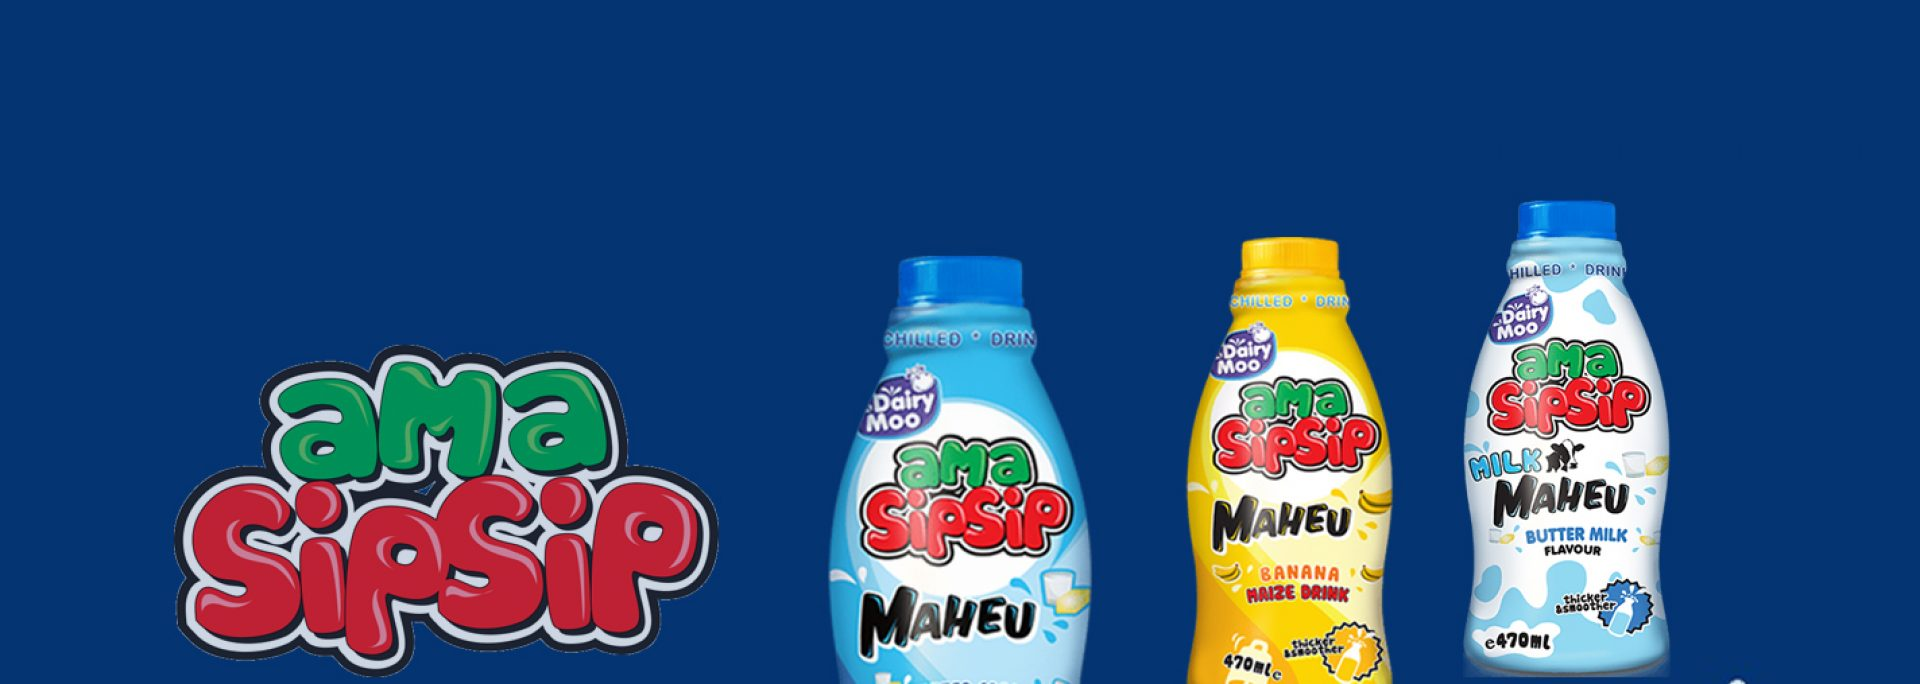 Daily Gold Zambia Limited | Makers of Ama Sip Sip Maheu